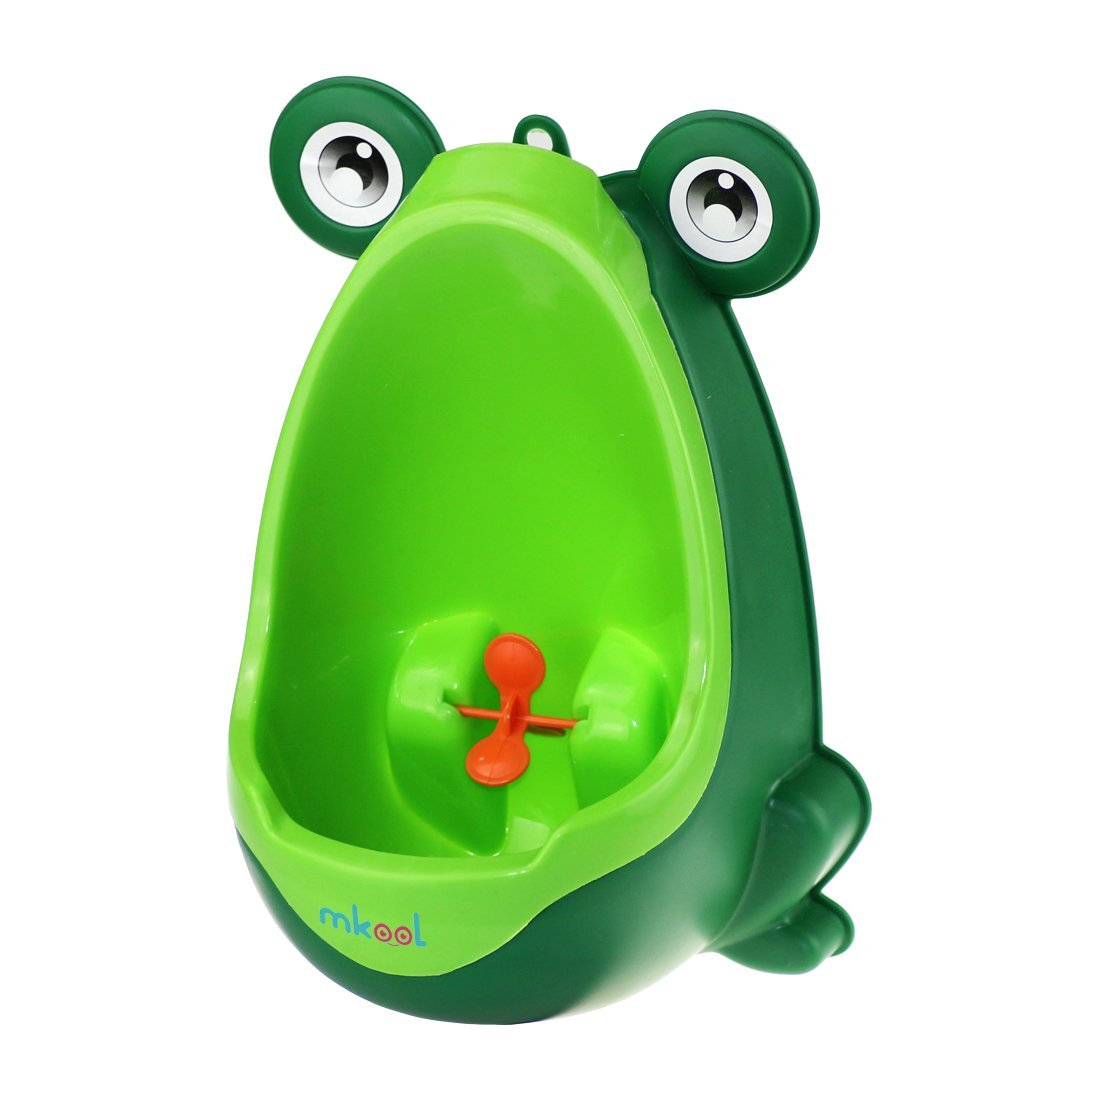 mkool Cute Frog Potty Training Urinal for Boys with Funny Aiming Target KU